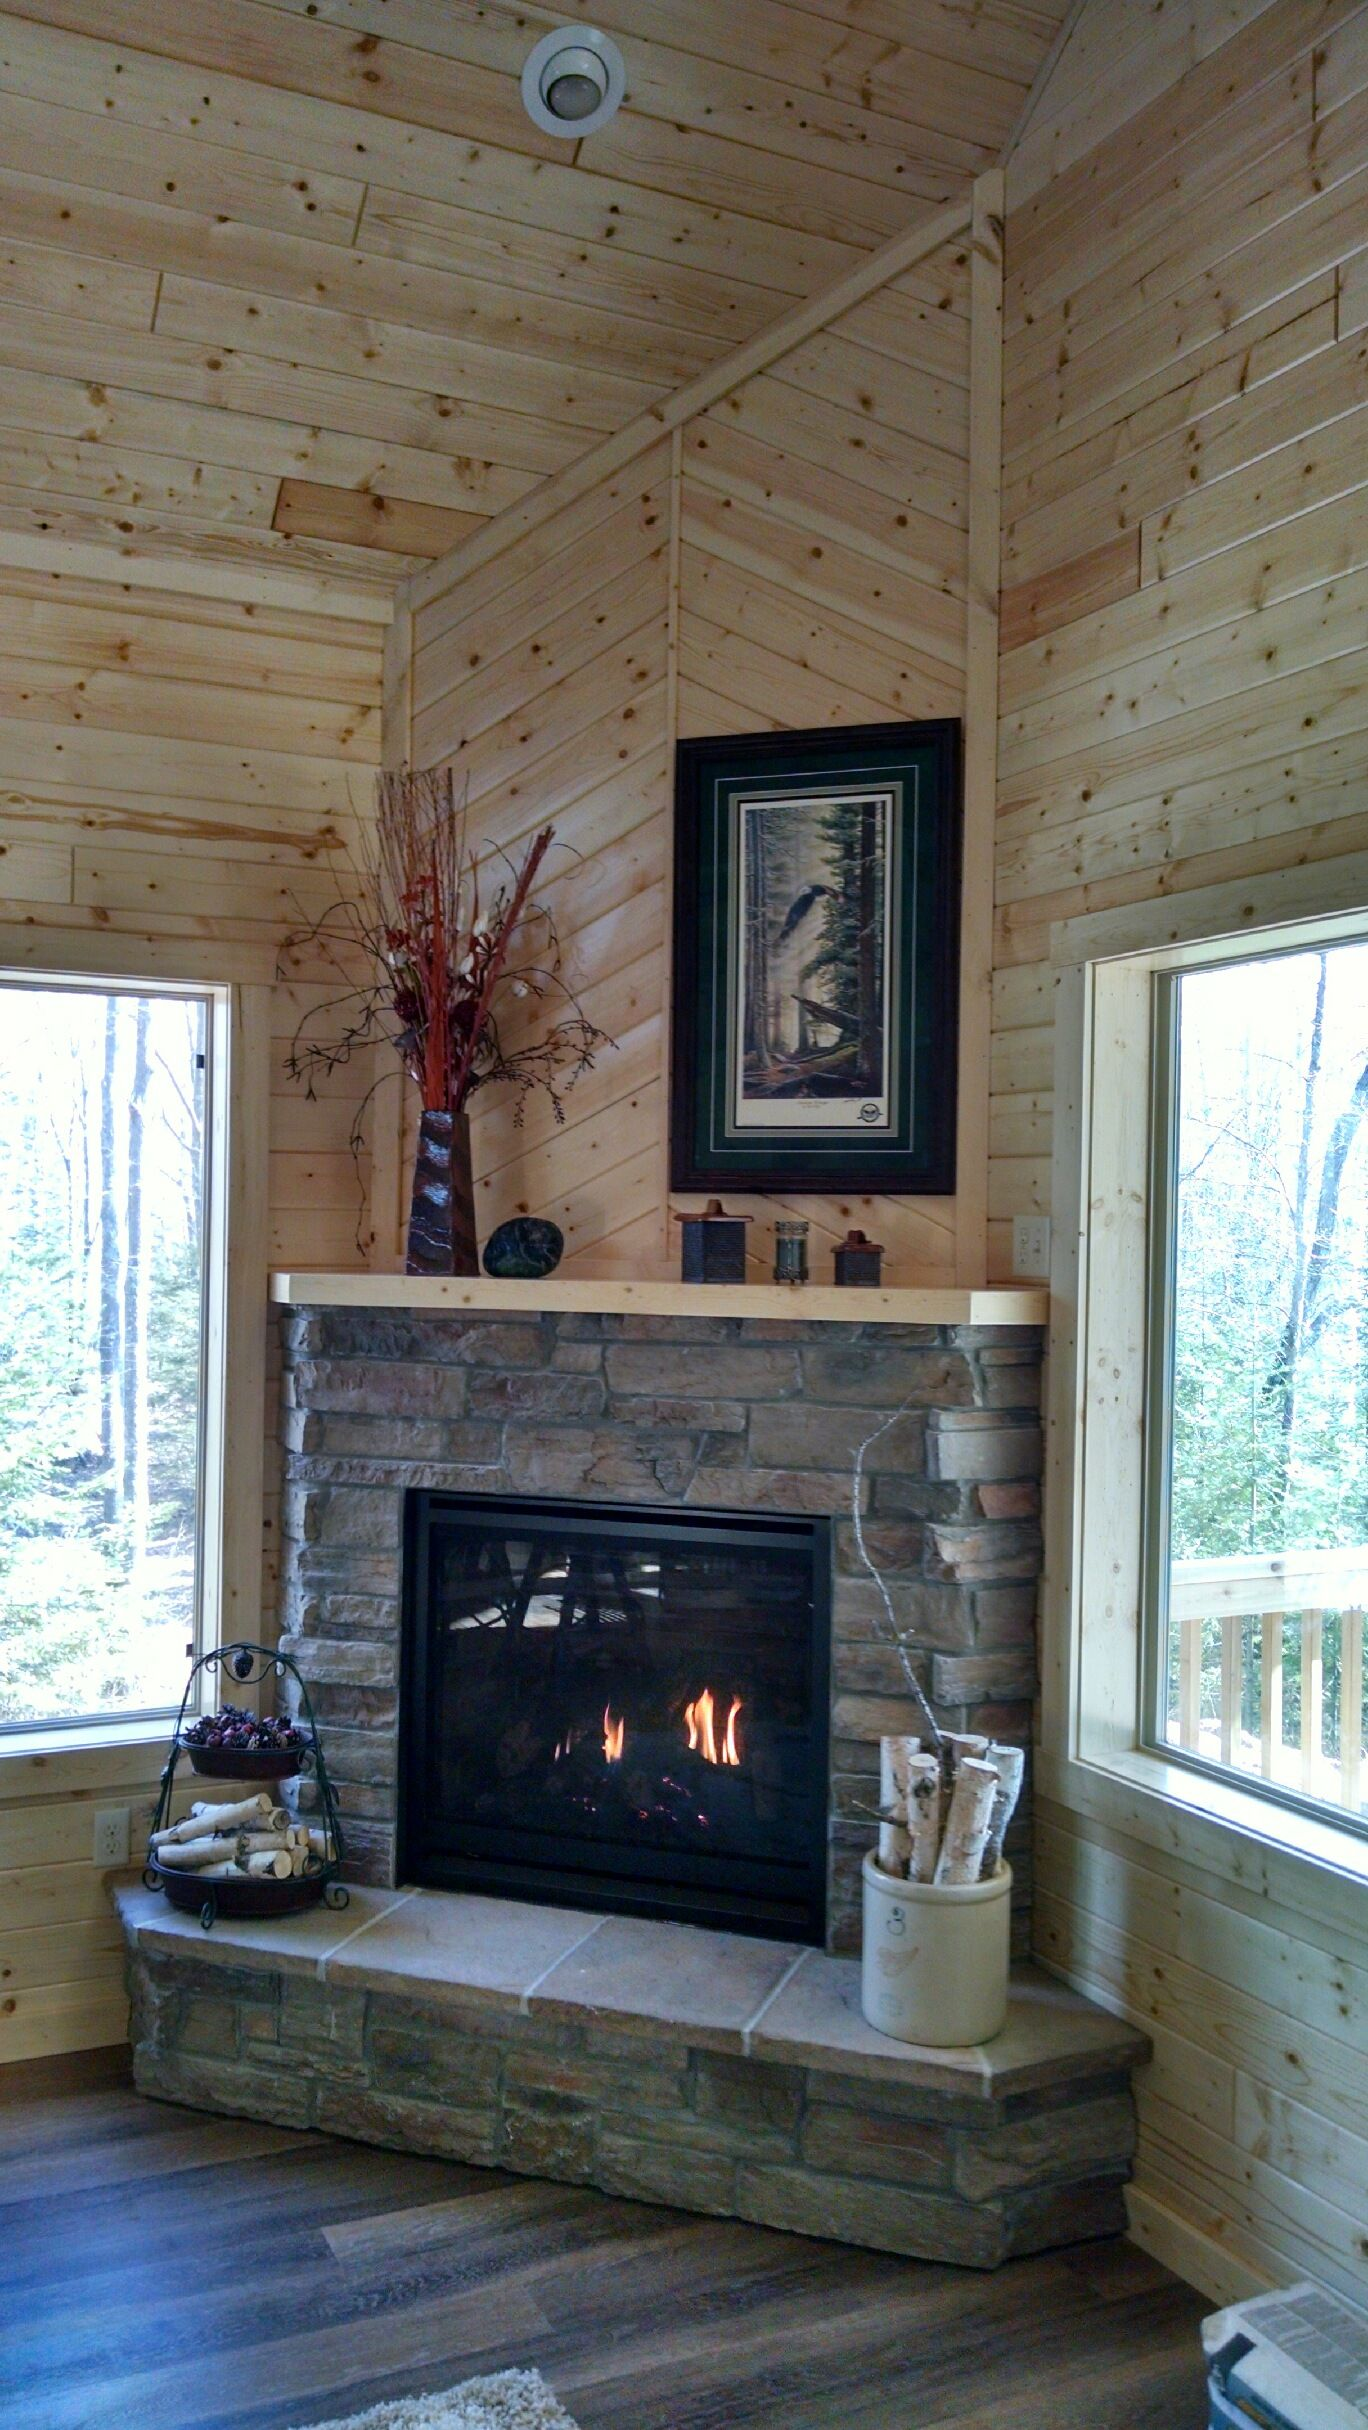 Great American Fireplace Installed This Kozy Heat Corner Gas